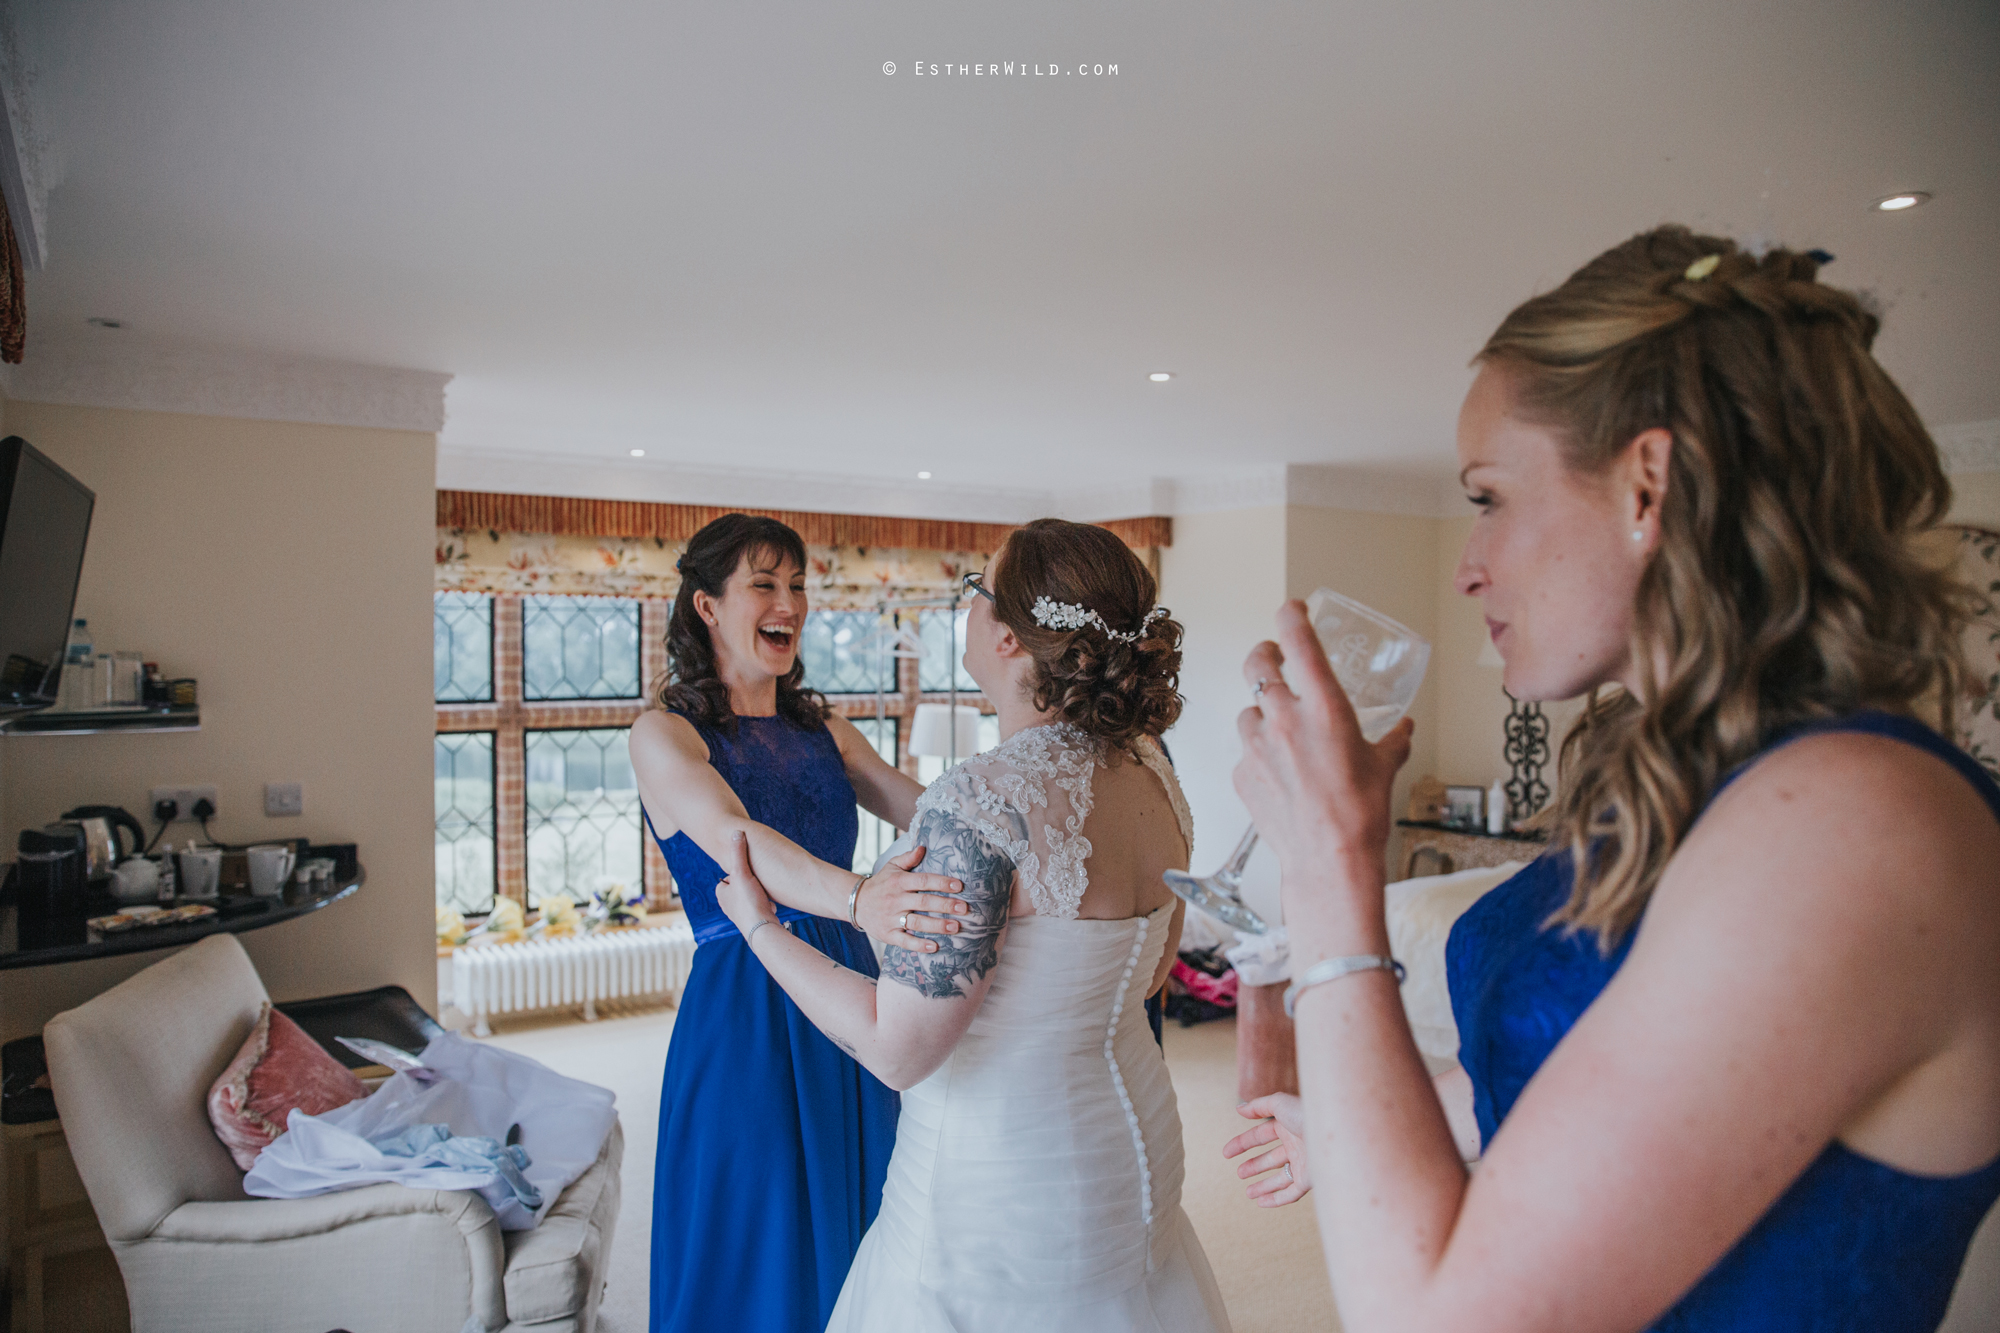 Old_Hall_Ely_Wedding_Esther_Wild_Photographer_IMG_0592.jpg